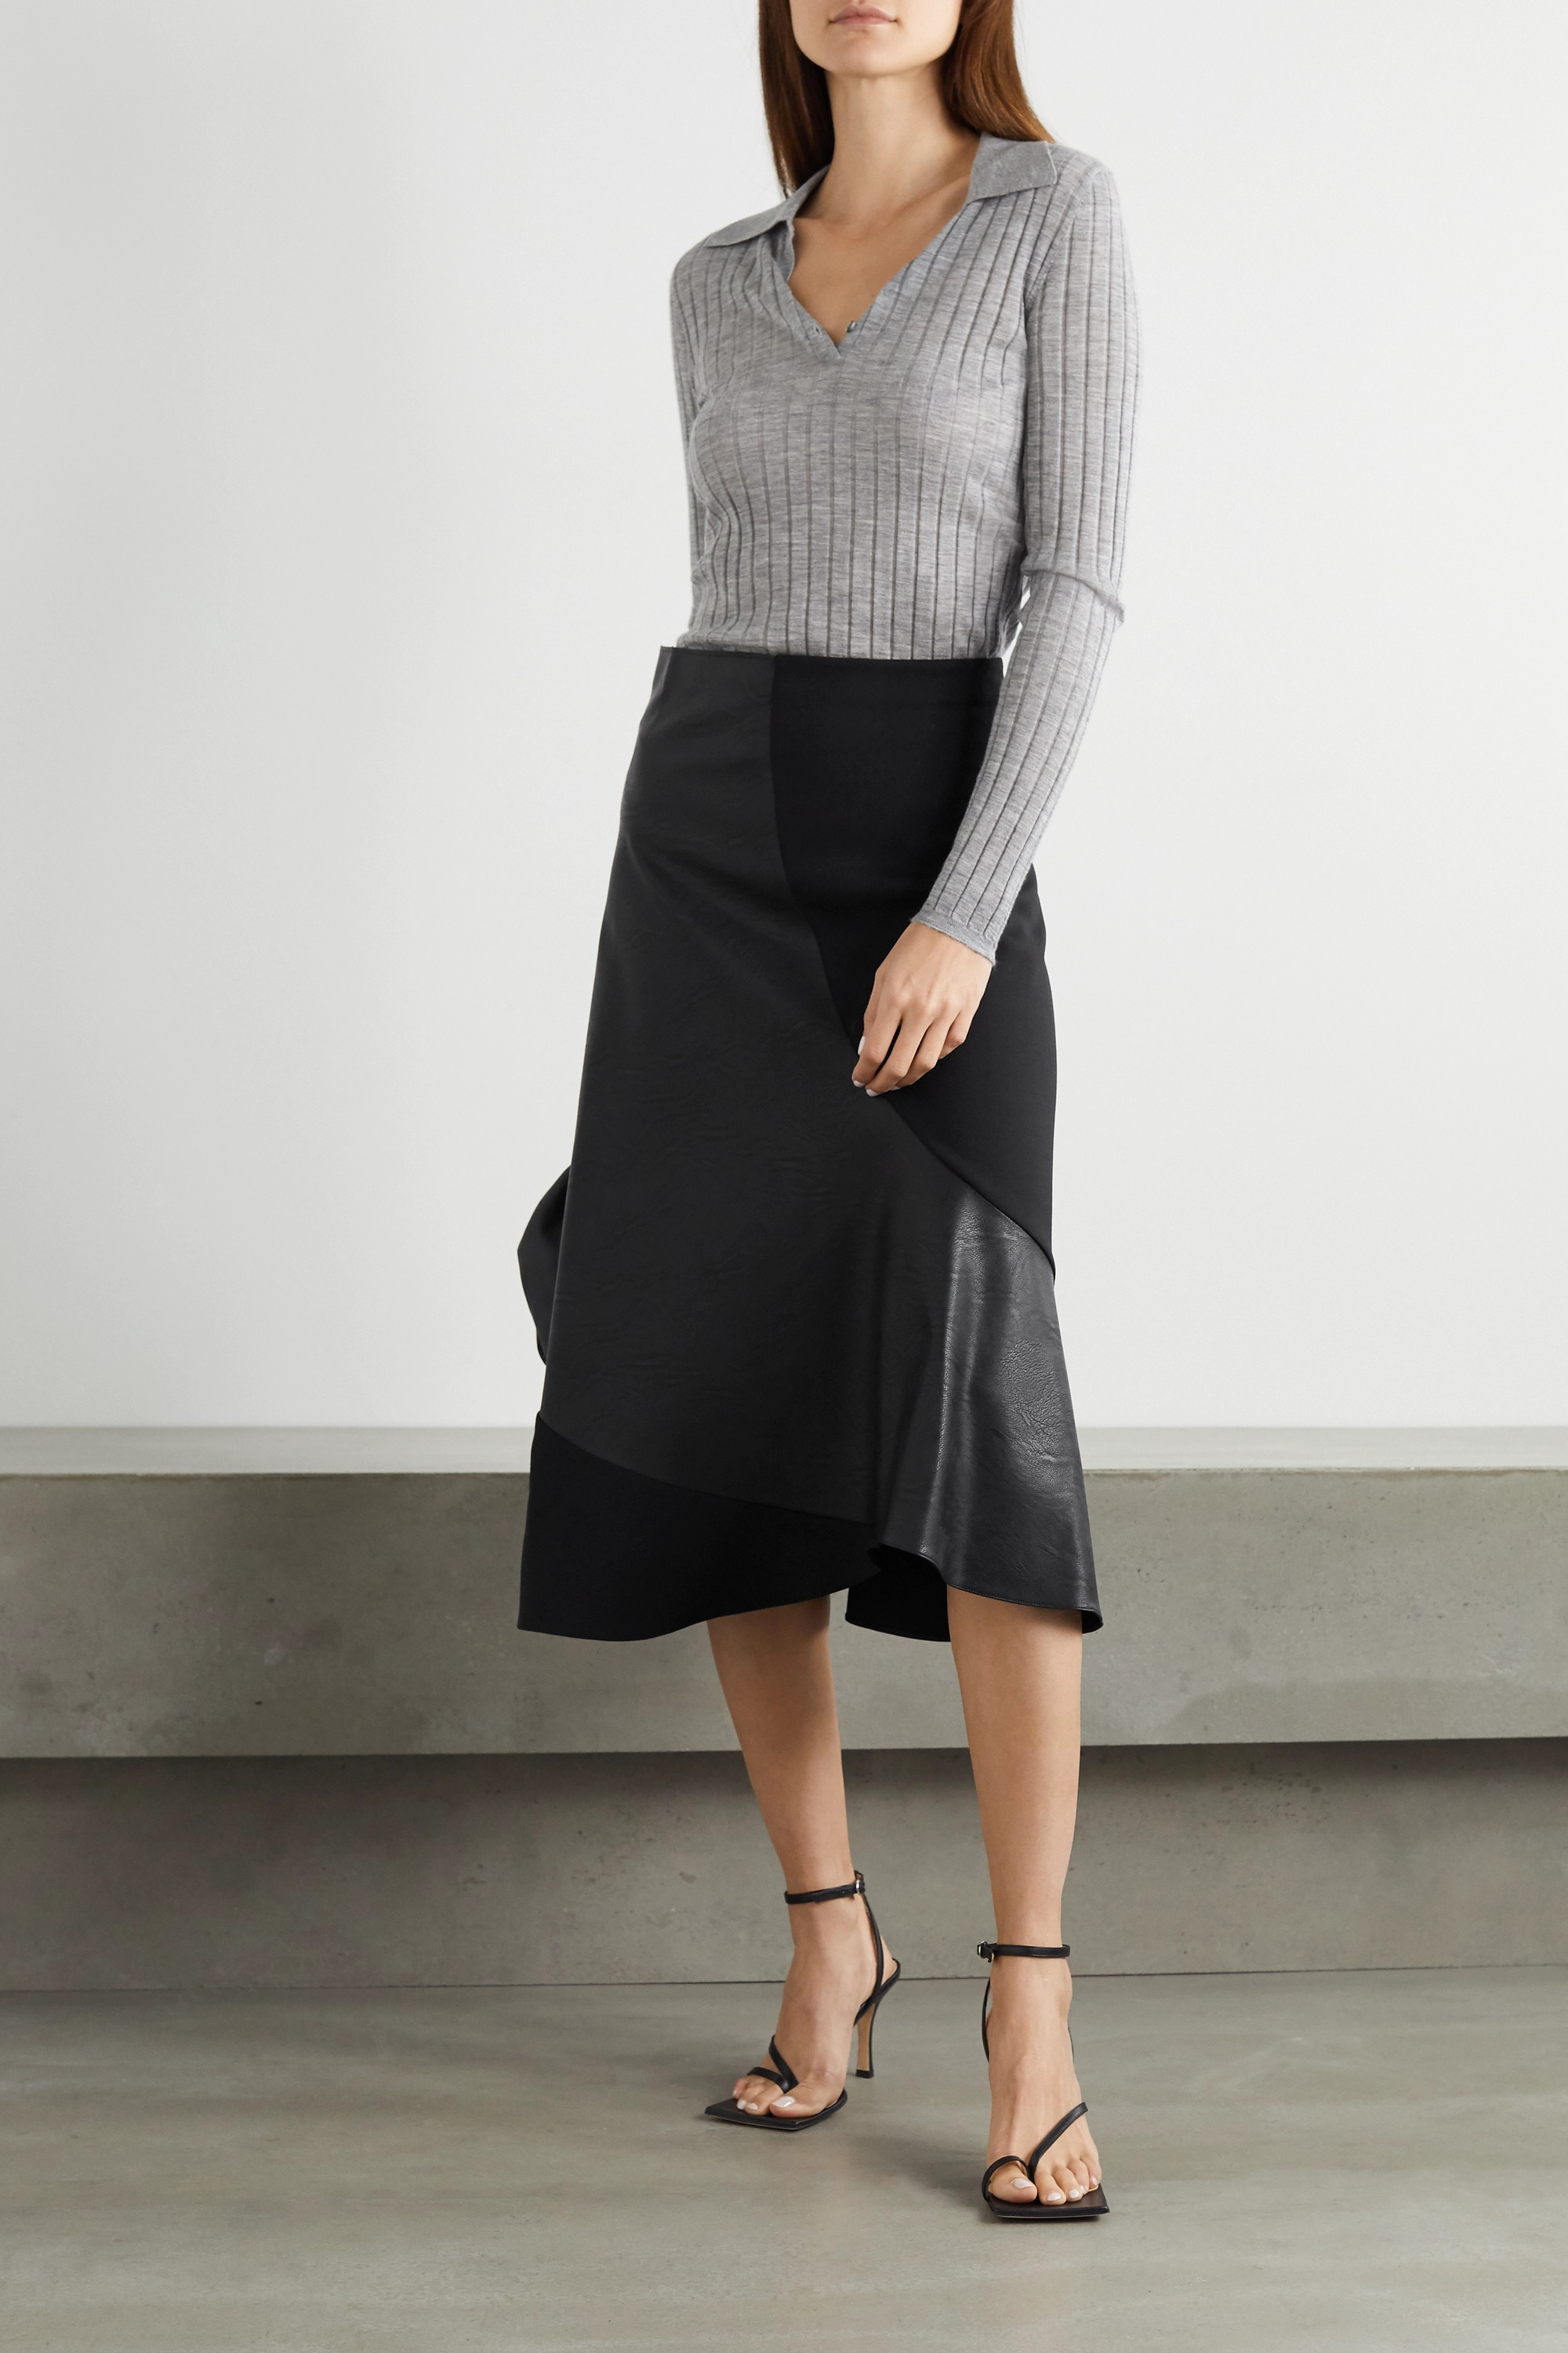 Stella McCartney Brenda paneled stretch-wool and vegetarian leather midi skirt